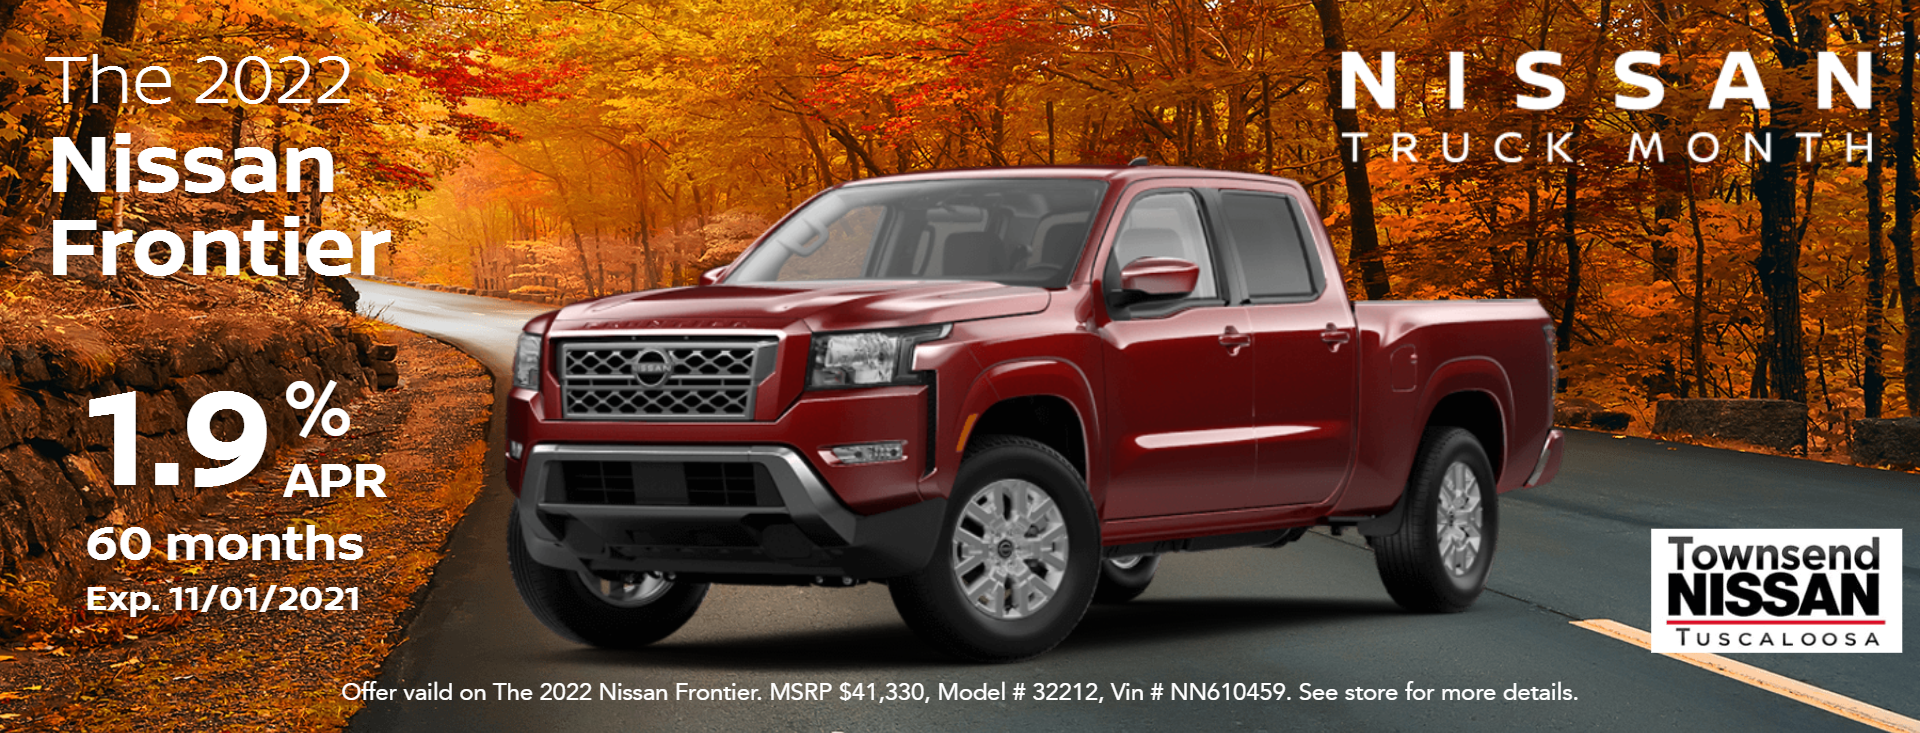 2022_Nissan_Frontier_Crew Cab Long Bed SV 4x2_Fri Oct 08 2021 09_00_57 GMT-0500 (Central Daylight Time)